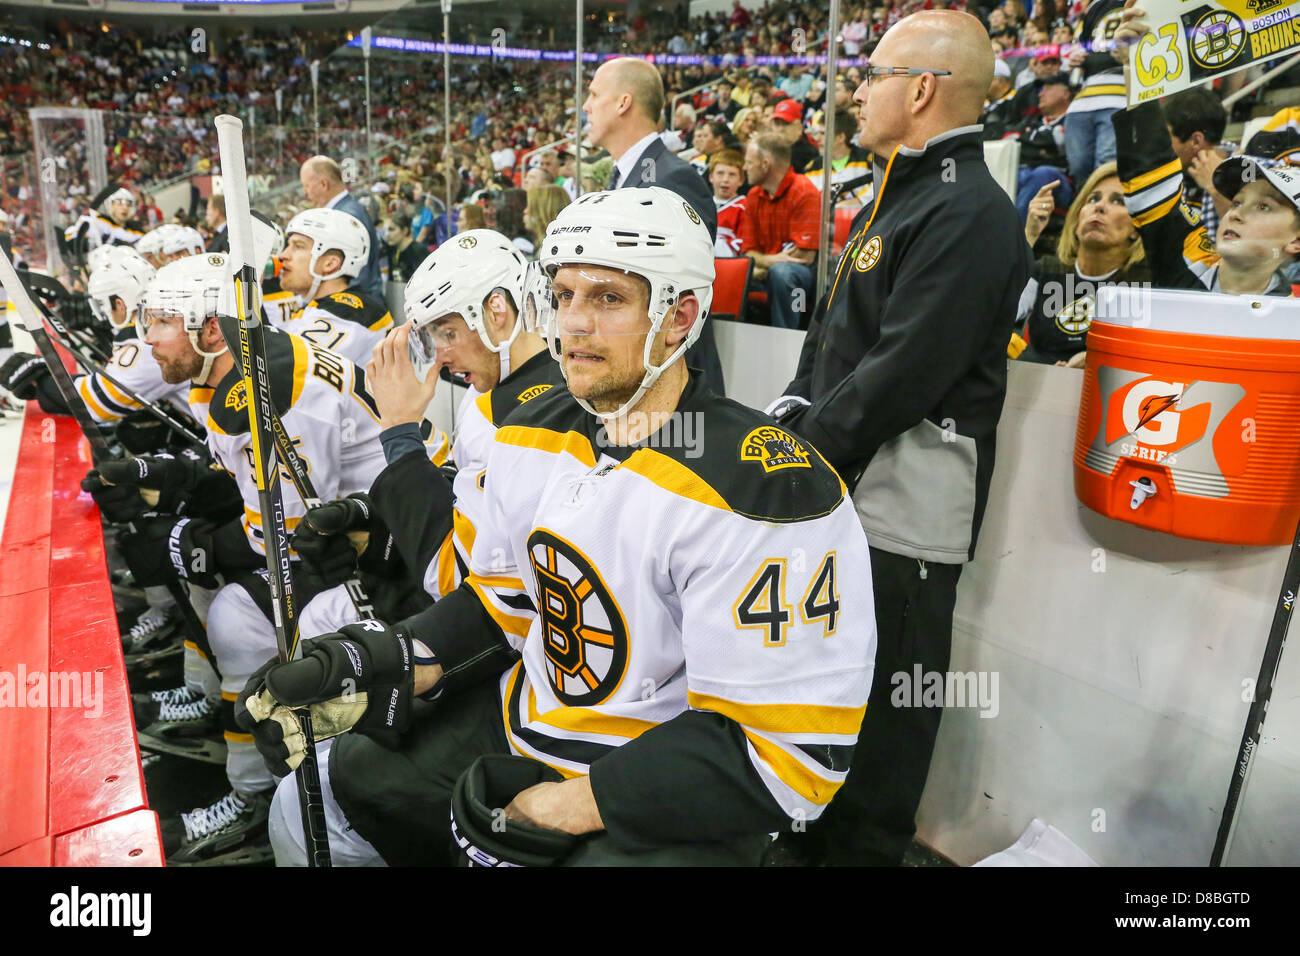 online retailer 34d52 e2a41 Boston Bruins Dennis Seidenberg Stock Photo: 56803053 - Alamy